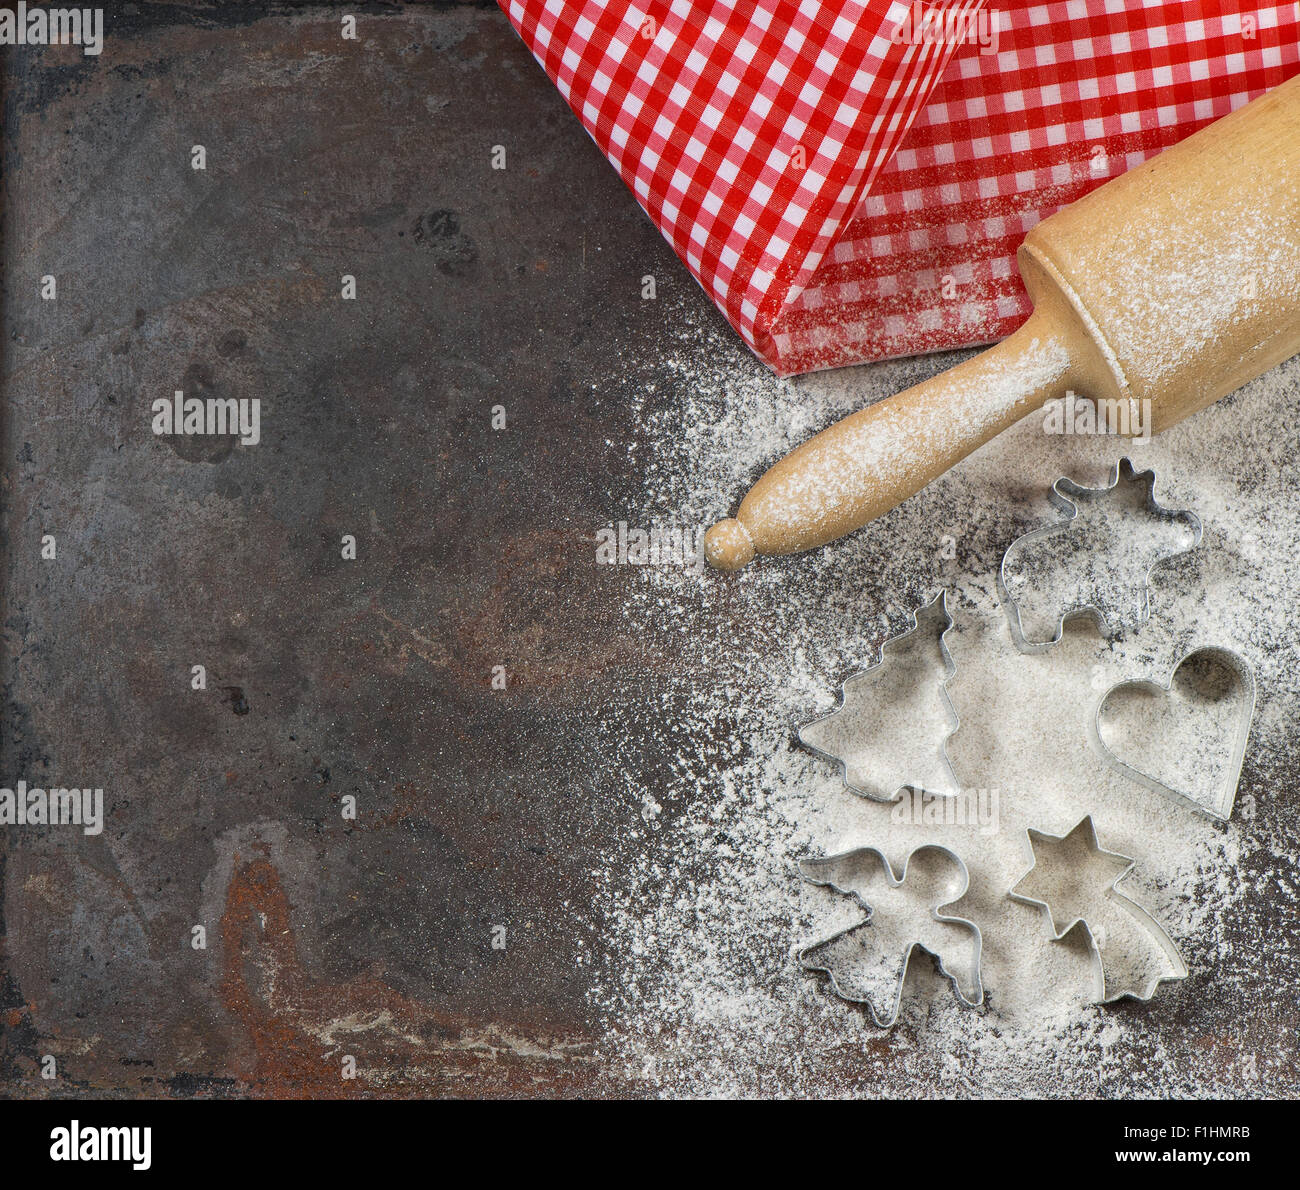 Flour, rolling pin and cookie cutters. Christmas food. Baking ingredients and tolls for dough preparation - Stock Image